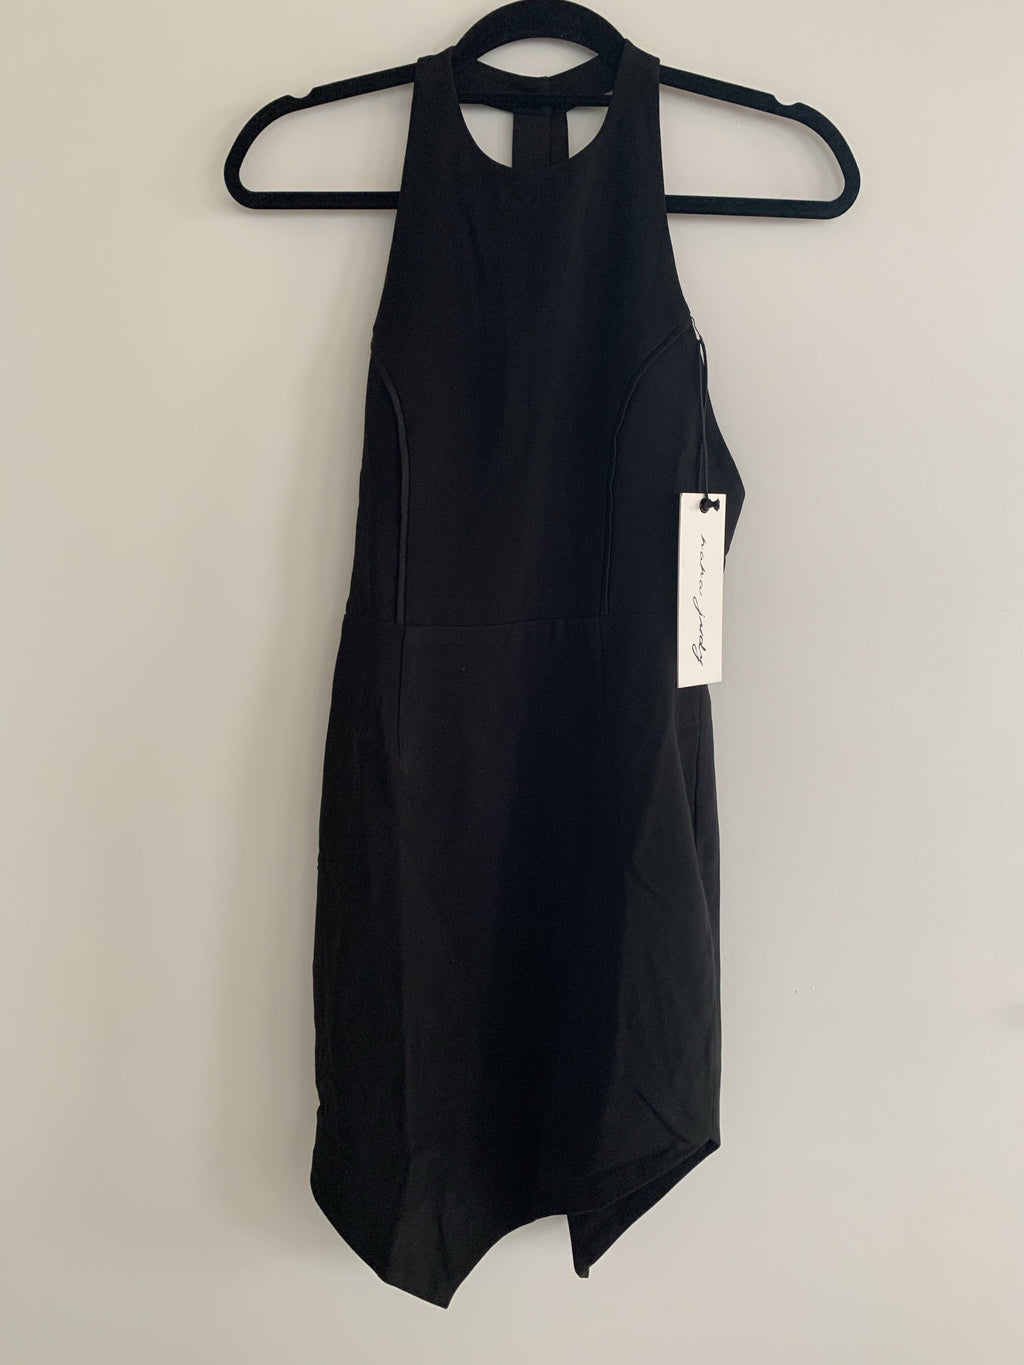 Violet Dress in Black size 6